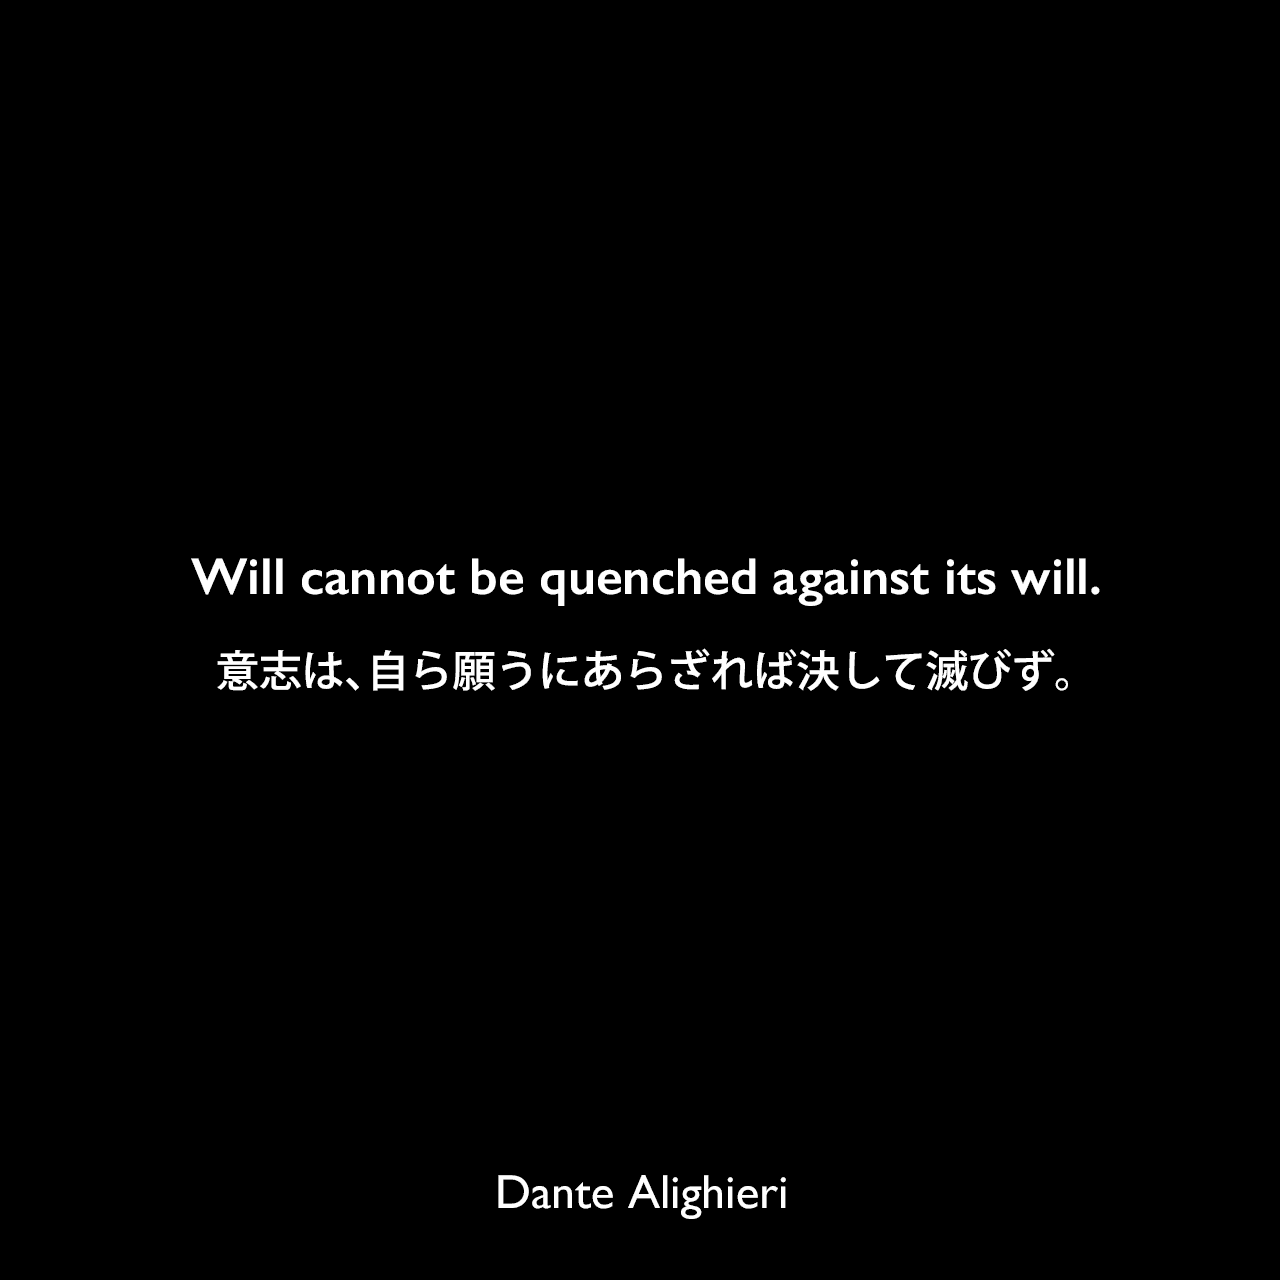 Will cannot be quenched against its will.意志は、自ら願うにあらざれば決して滅びず。Dante Alighieri